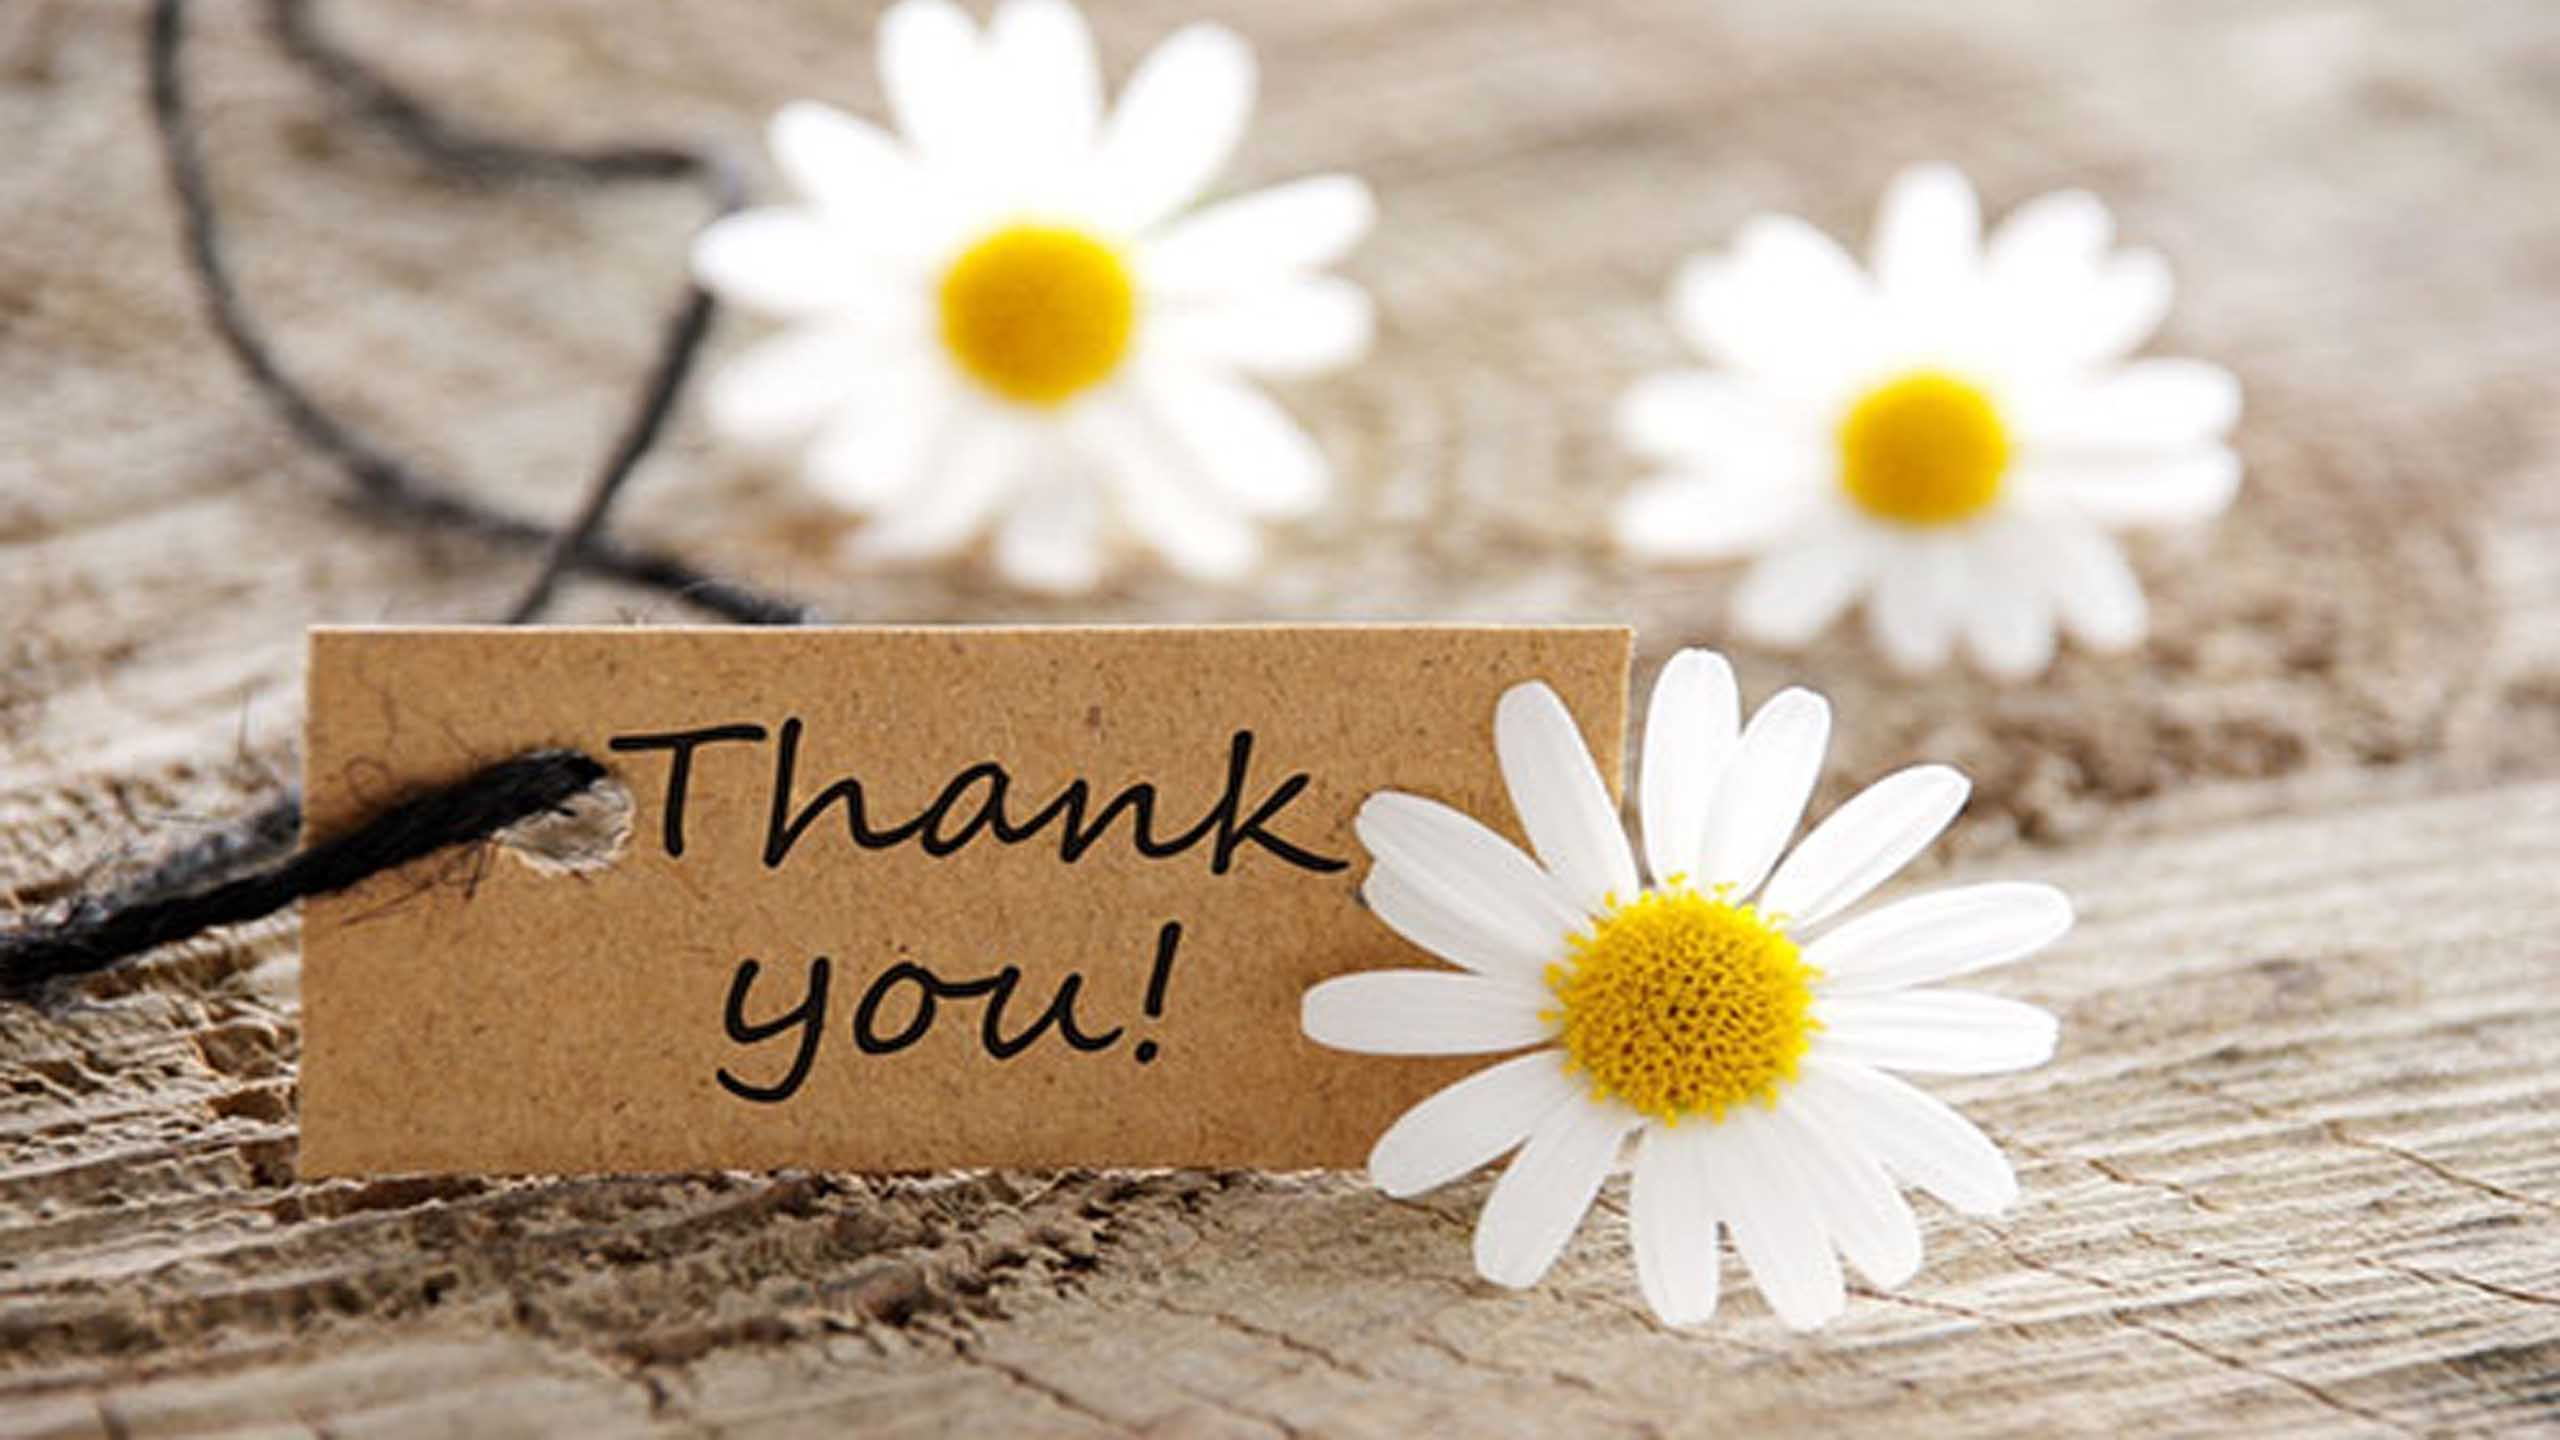 50 Thank You Quotes to Your Express Gratitude